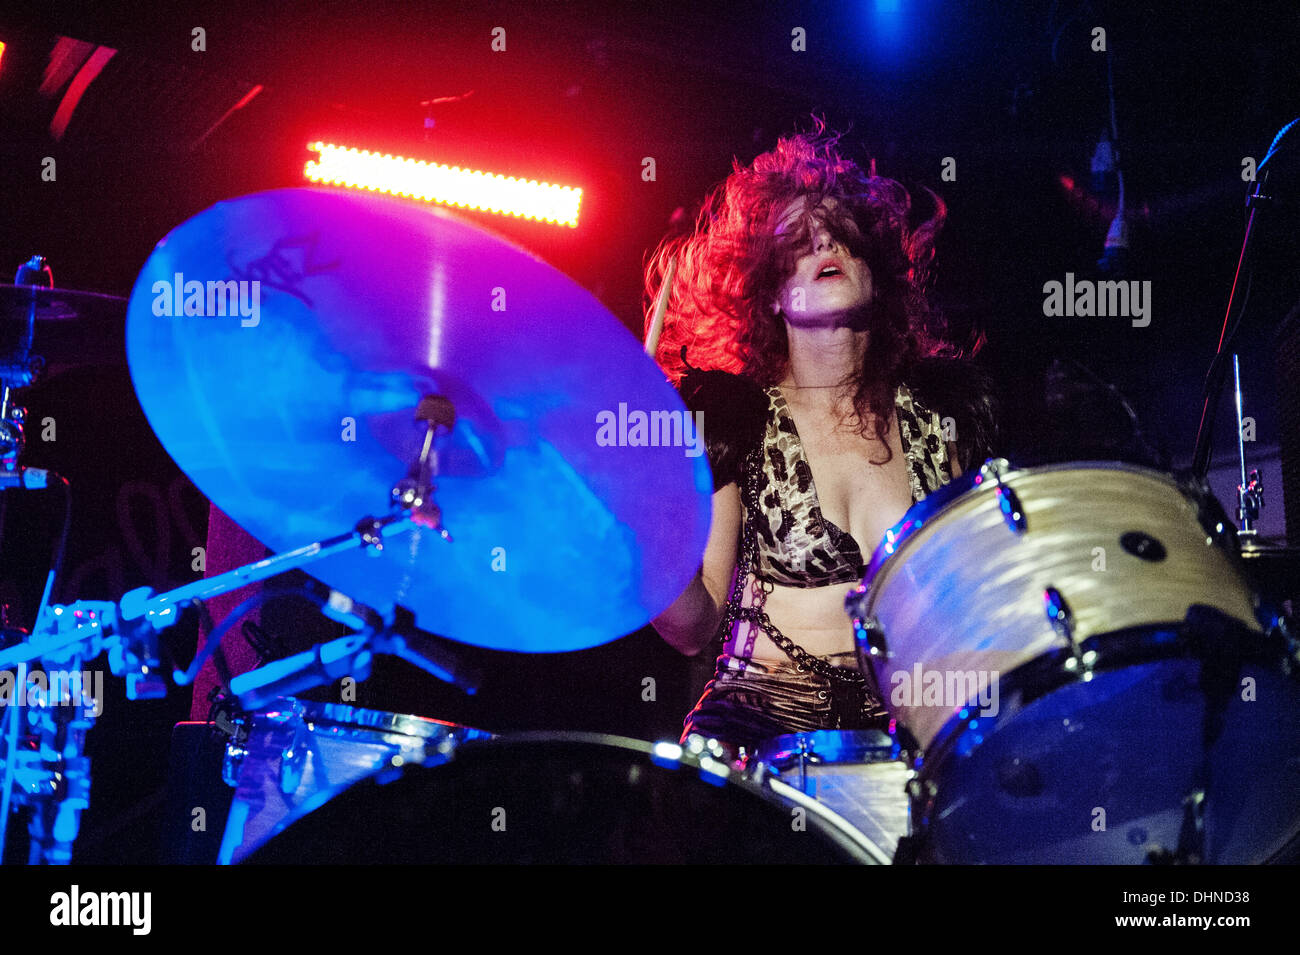 Glasgow, Scotland, UK. 12th November 2013. Julie Edwards of Deap Vally performs at Oran Mor in Glasgow, Scotland, - Stock Image